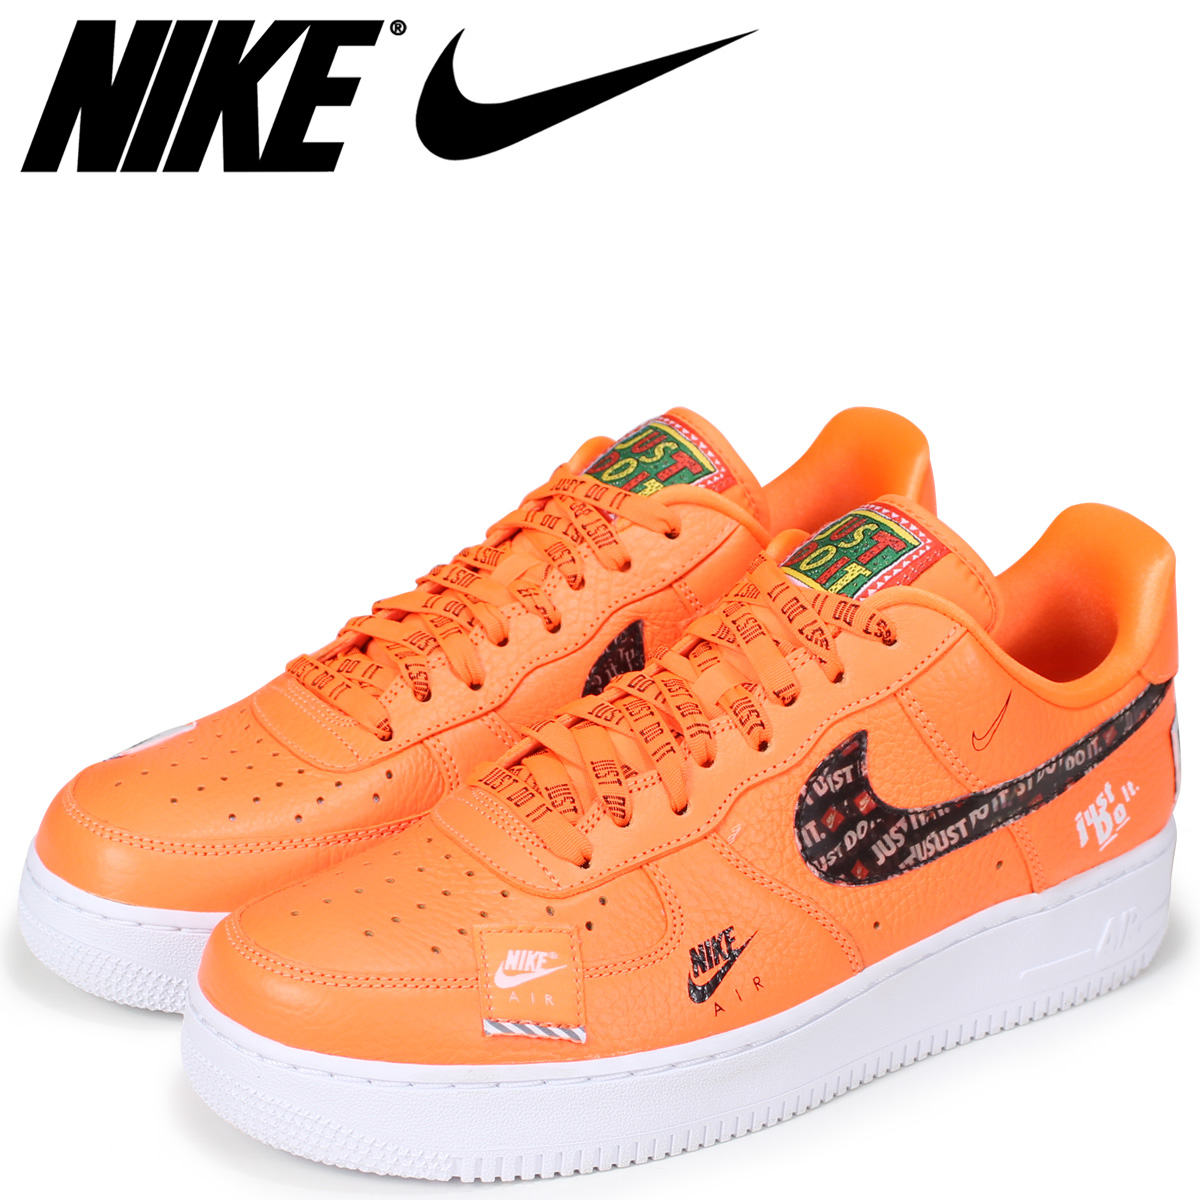 cheap for discount 55910 61f28 NIKE Nike air force 1 sneakers men AIR FORCE 1 07 PREMIUM JUST DO IT  AR7719-800 orange load planned Shinnyu load in reservation product 713  containing